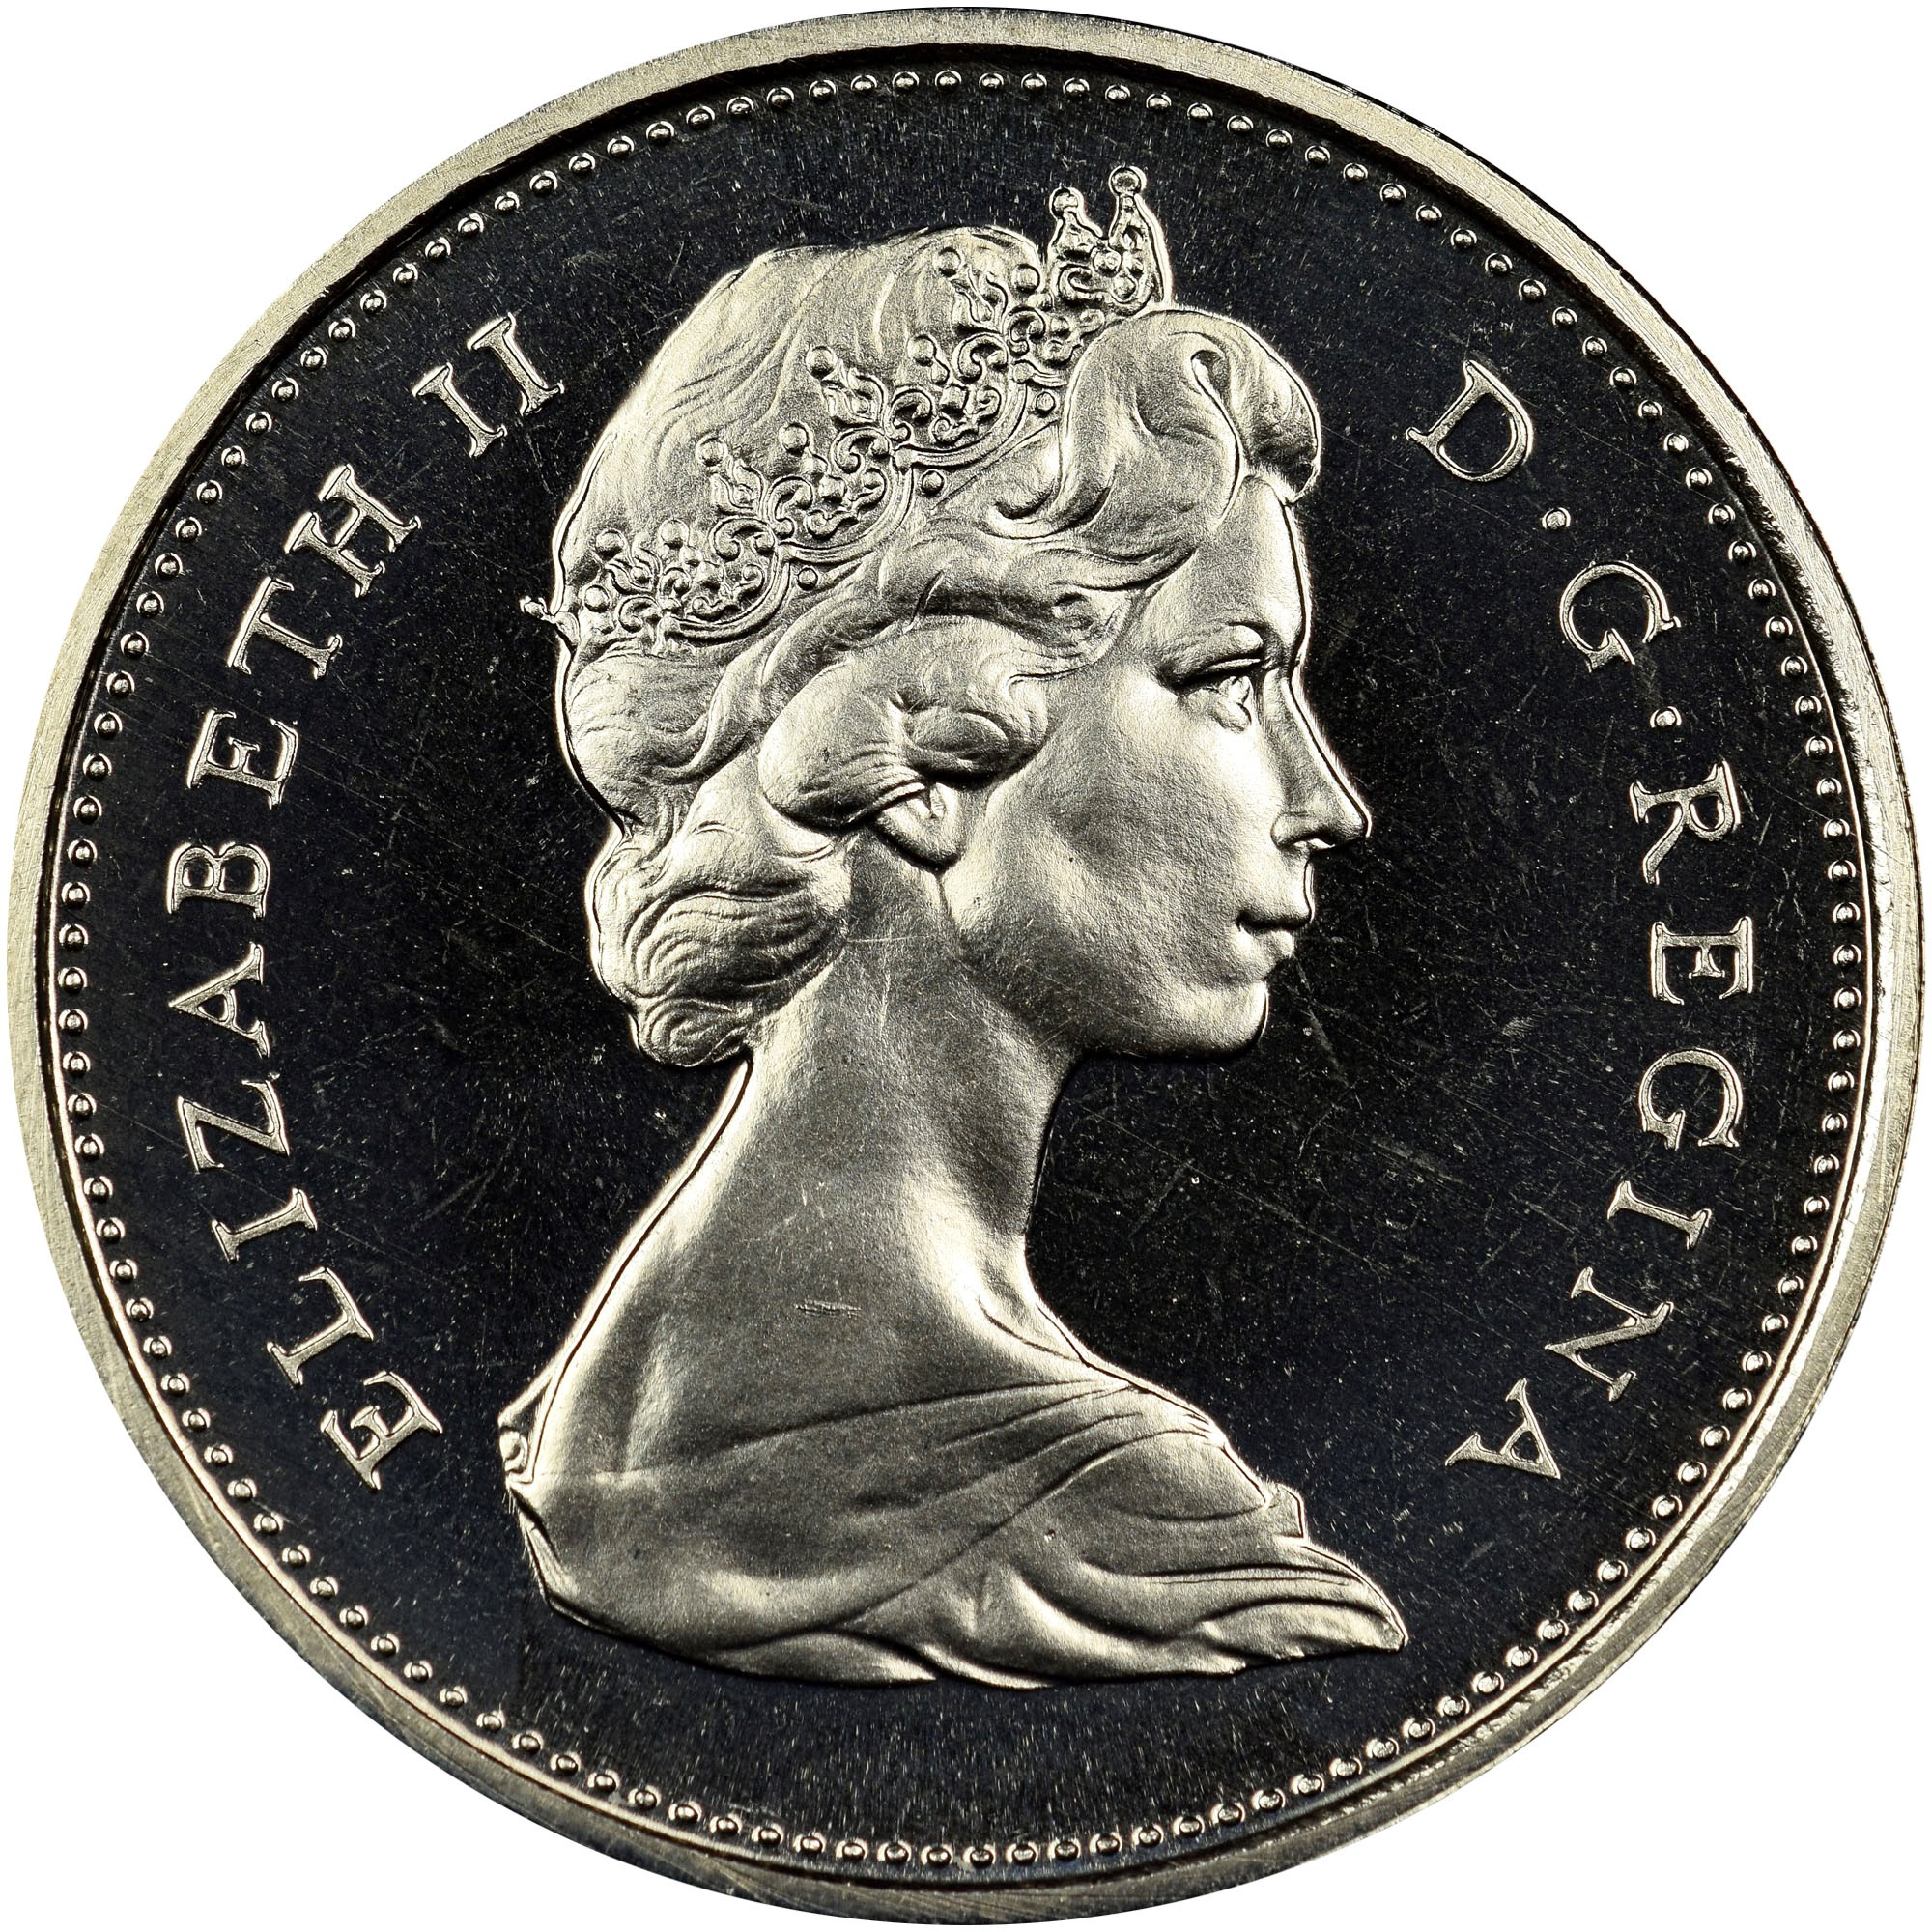 Canada 25 Cents obverse